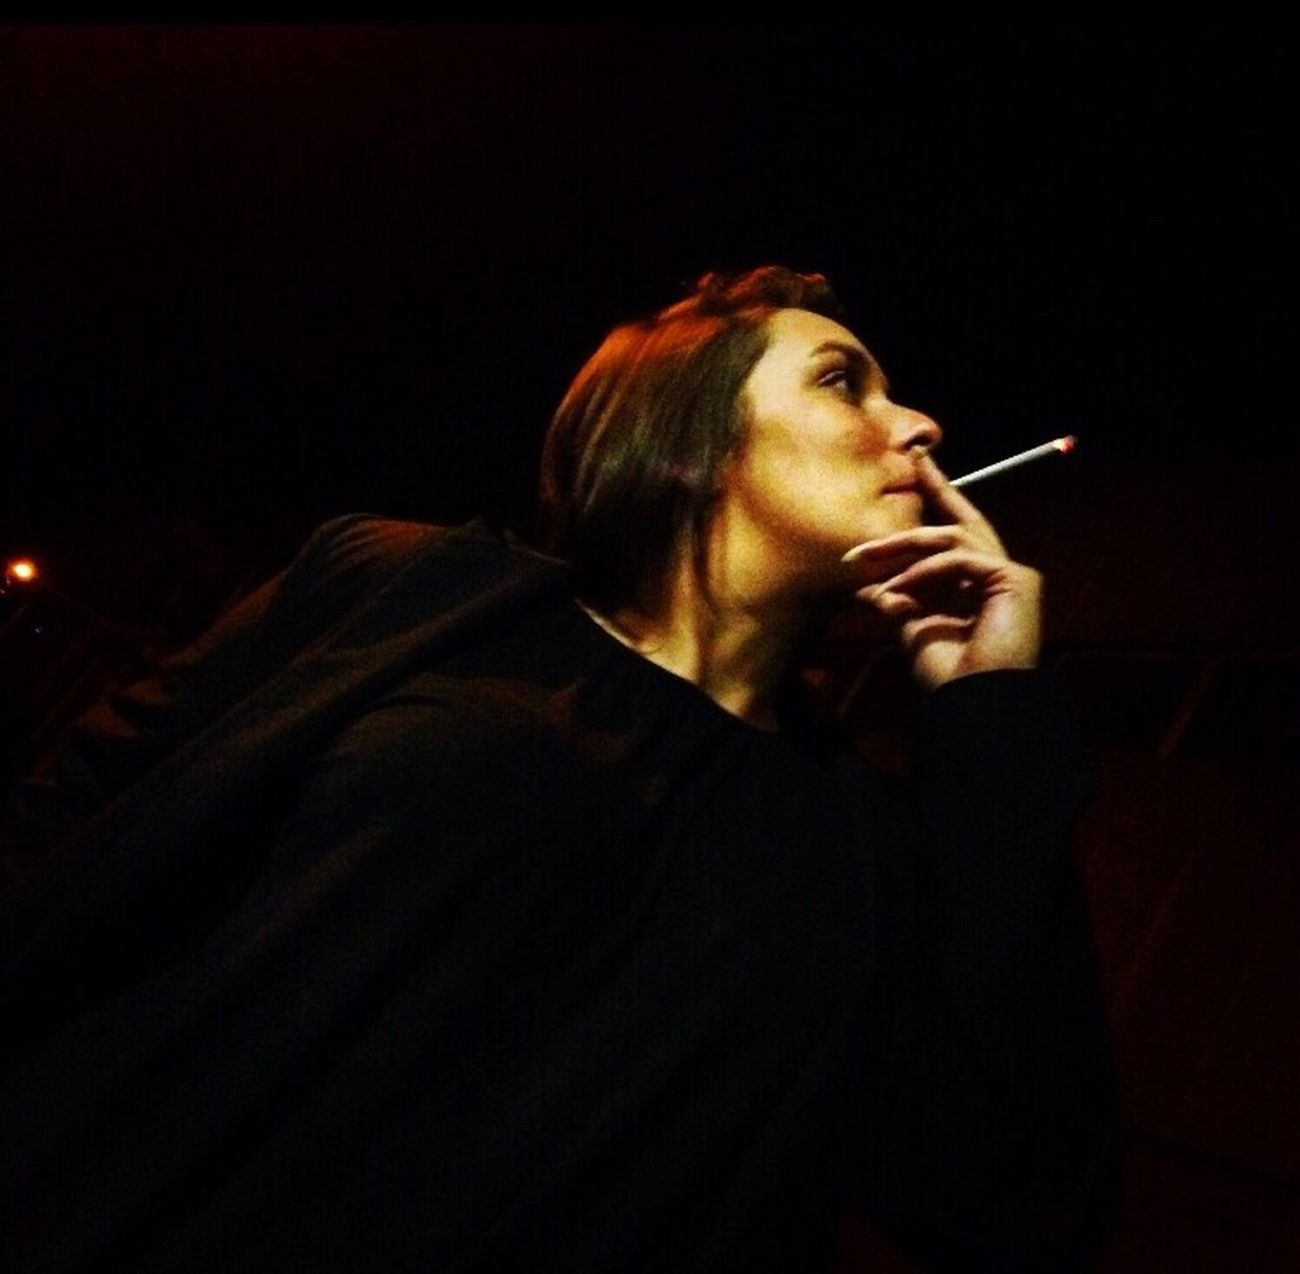 Beautiful Beauty Friends Forever Friends Smoking Posing One Person Dark Darkness